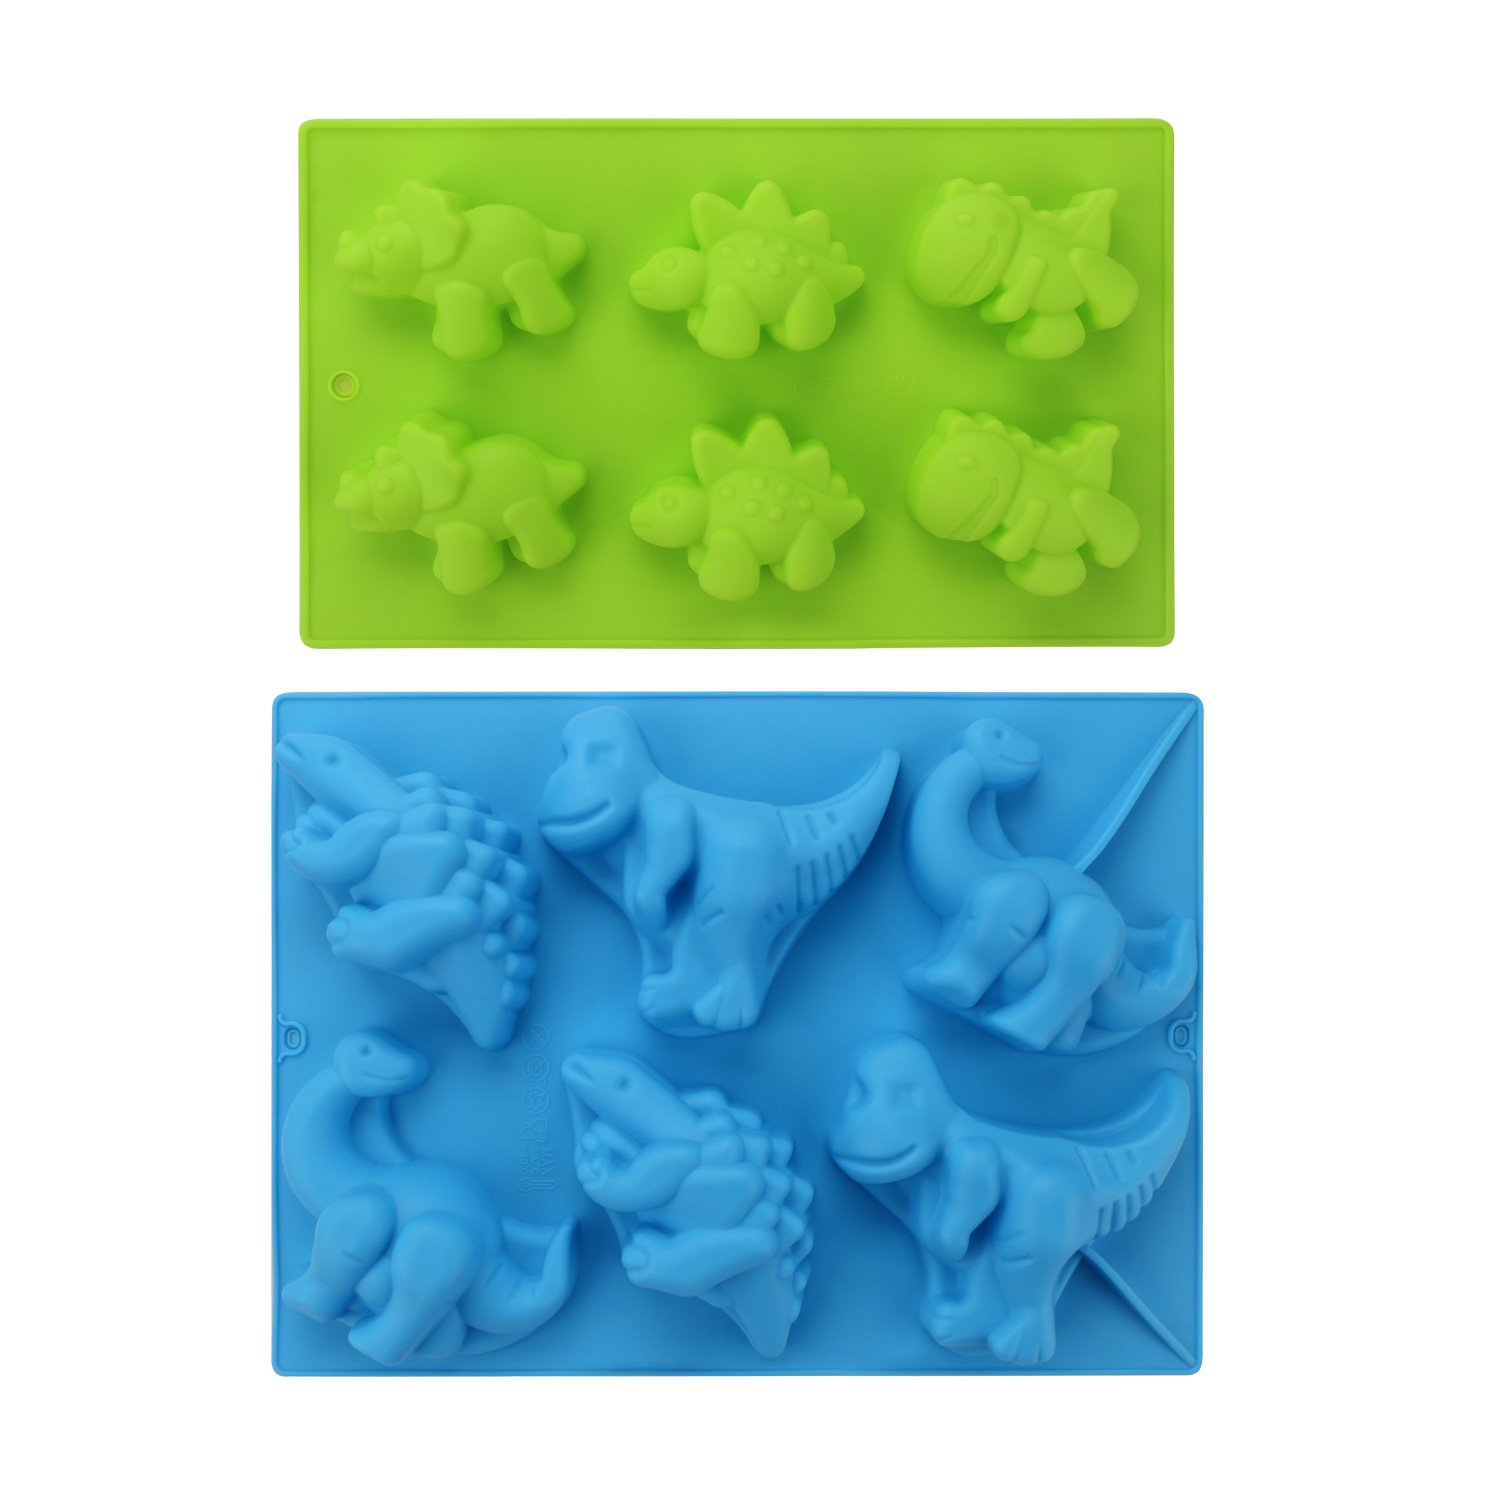 Silicone Dinosaur Molds, Beasea (2 Pack) 3D Cake Mold Perfect for Dinosaur Gummies, Chocolates, Ice Cube Cake Decorations Baking Tools by Beasea